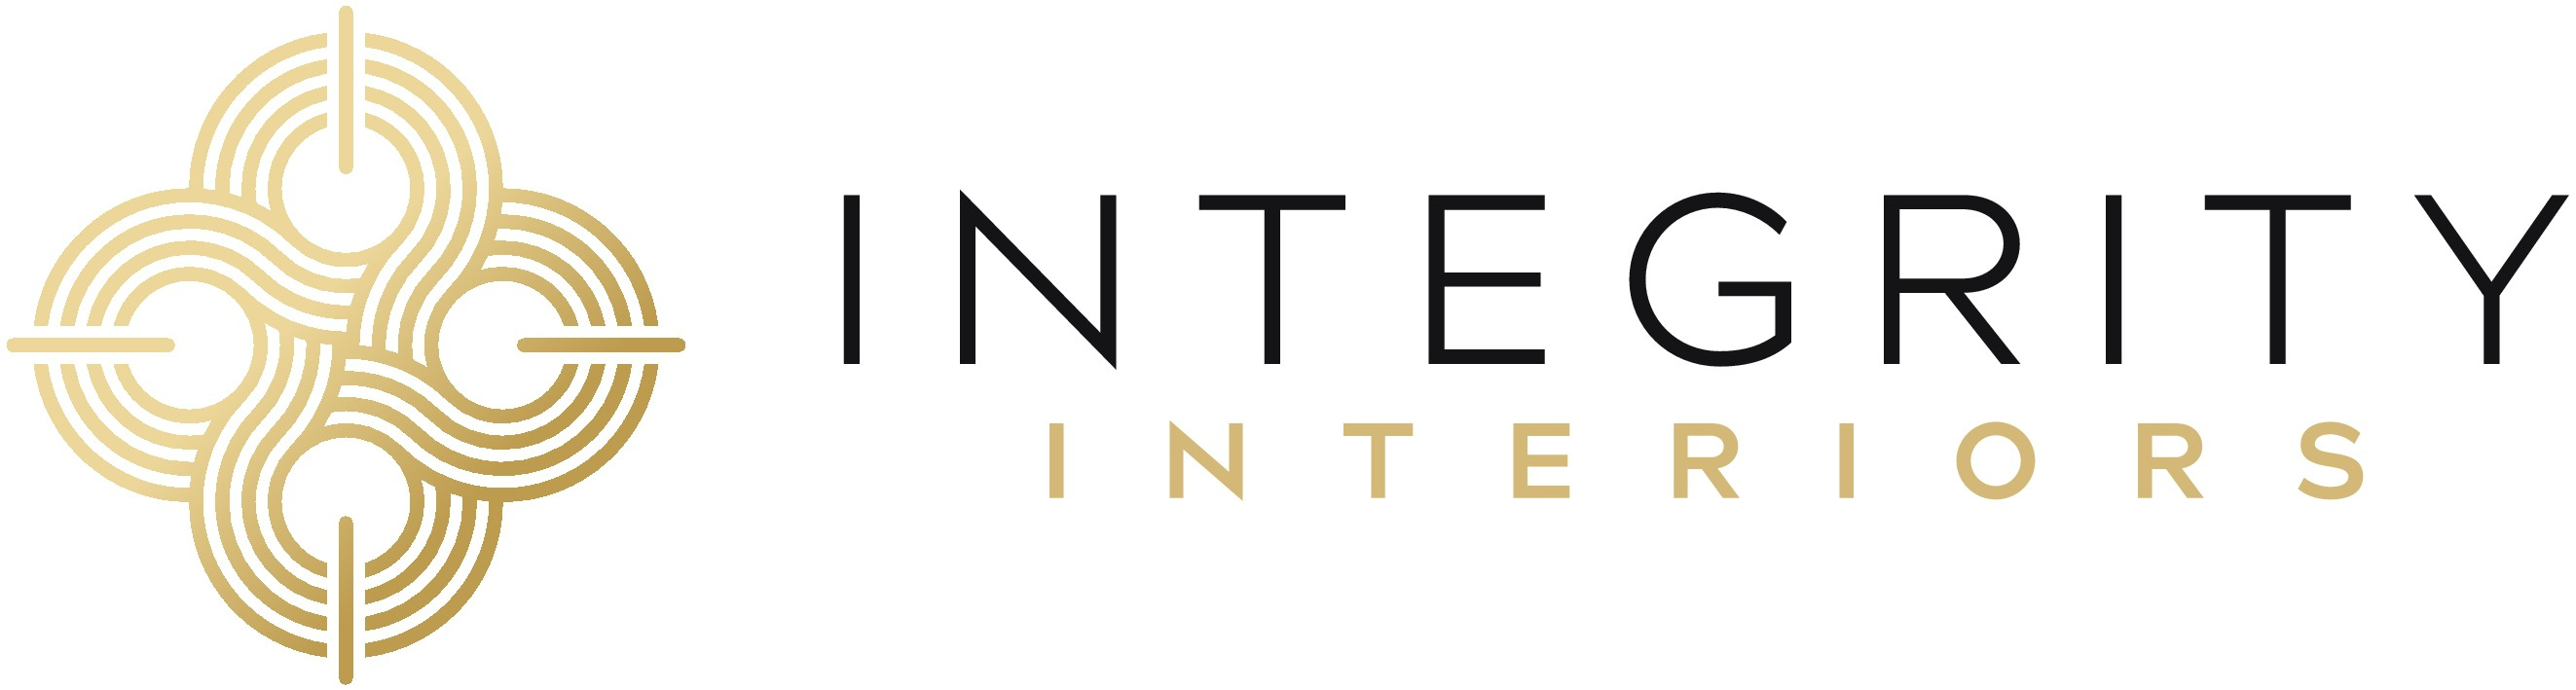 Create a one of a kind logo for our new Interior Design Firm, Integrity Interiors